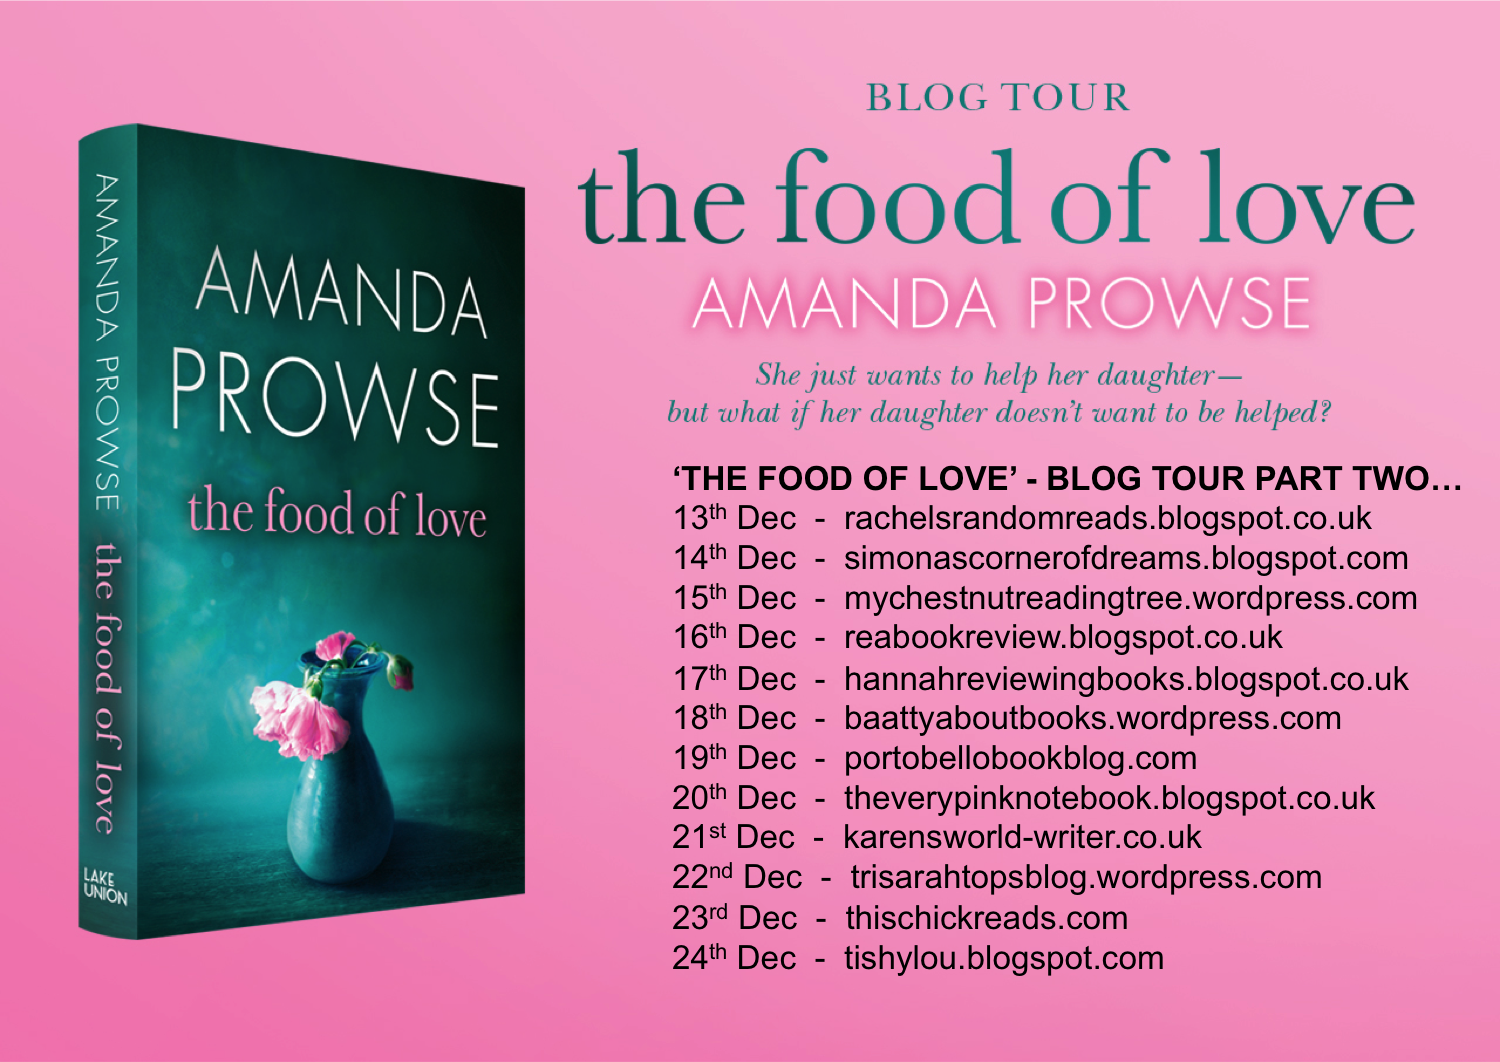 BleachHouseLibrary ie: Blog Tour Book Review - 'The Food of